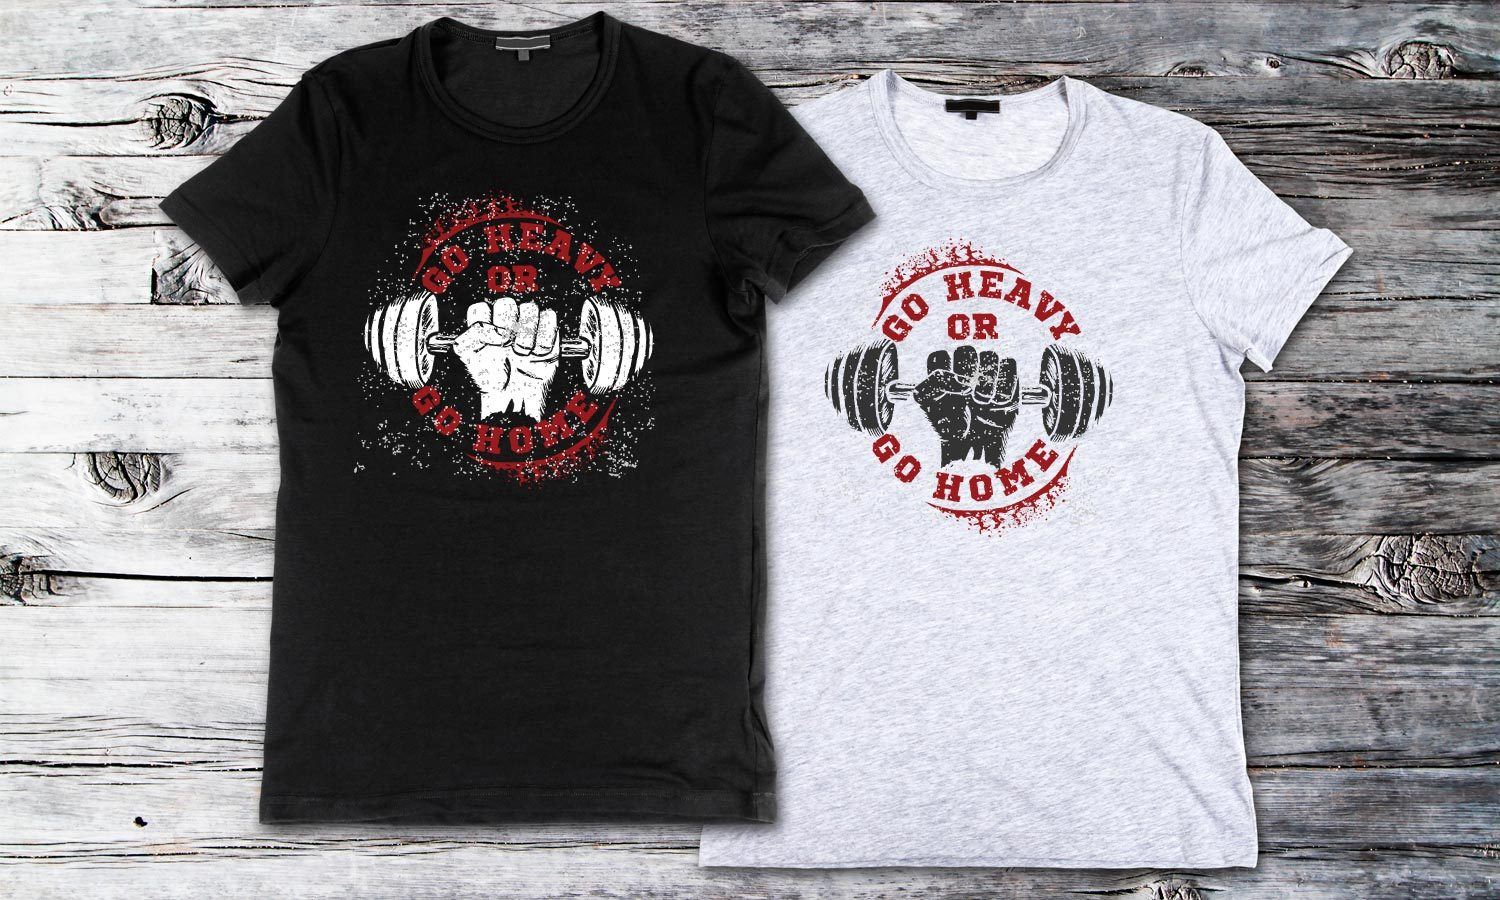 Fitness Go Heavy - Printed T-Shirt for Men, Women and Kids - TS012